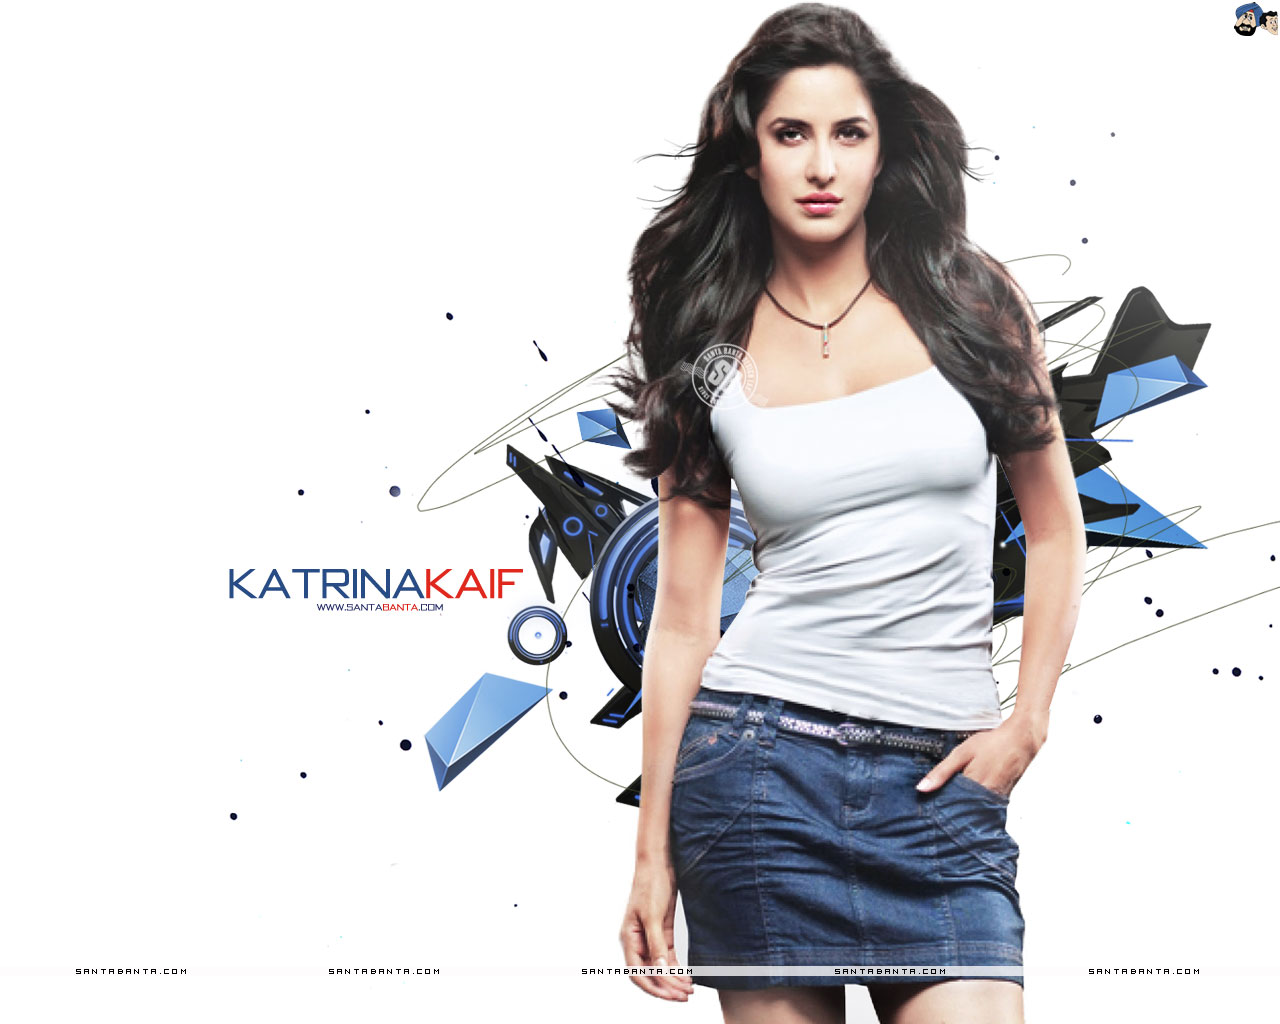 Katrina Kaif Wallpapers - Full Hd Wallpaper-7214